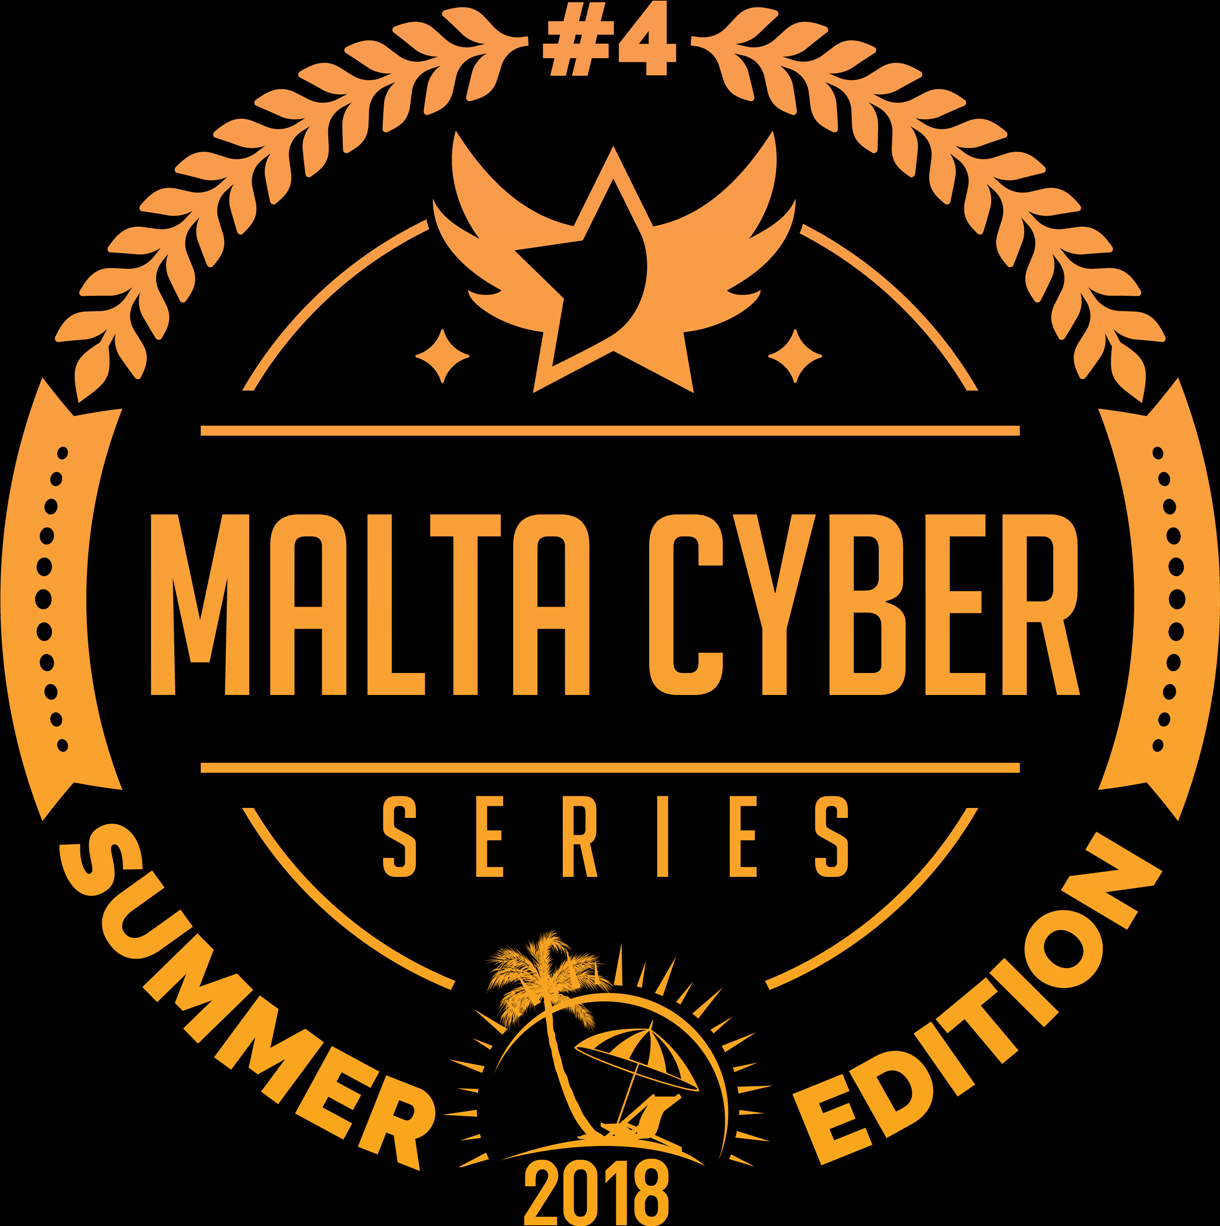 Malta Cyber Series #4 flyer